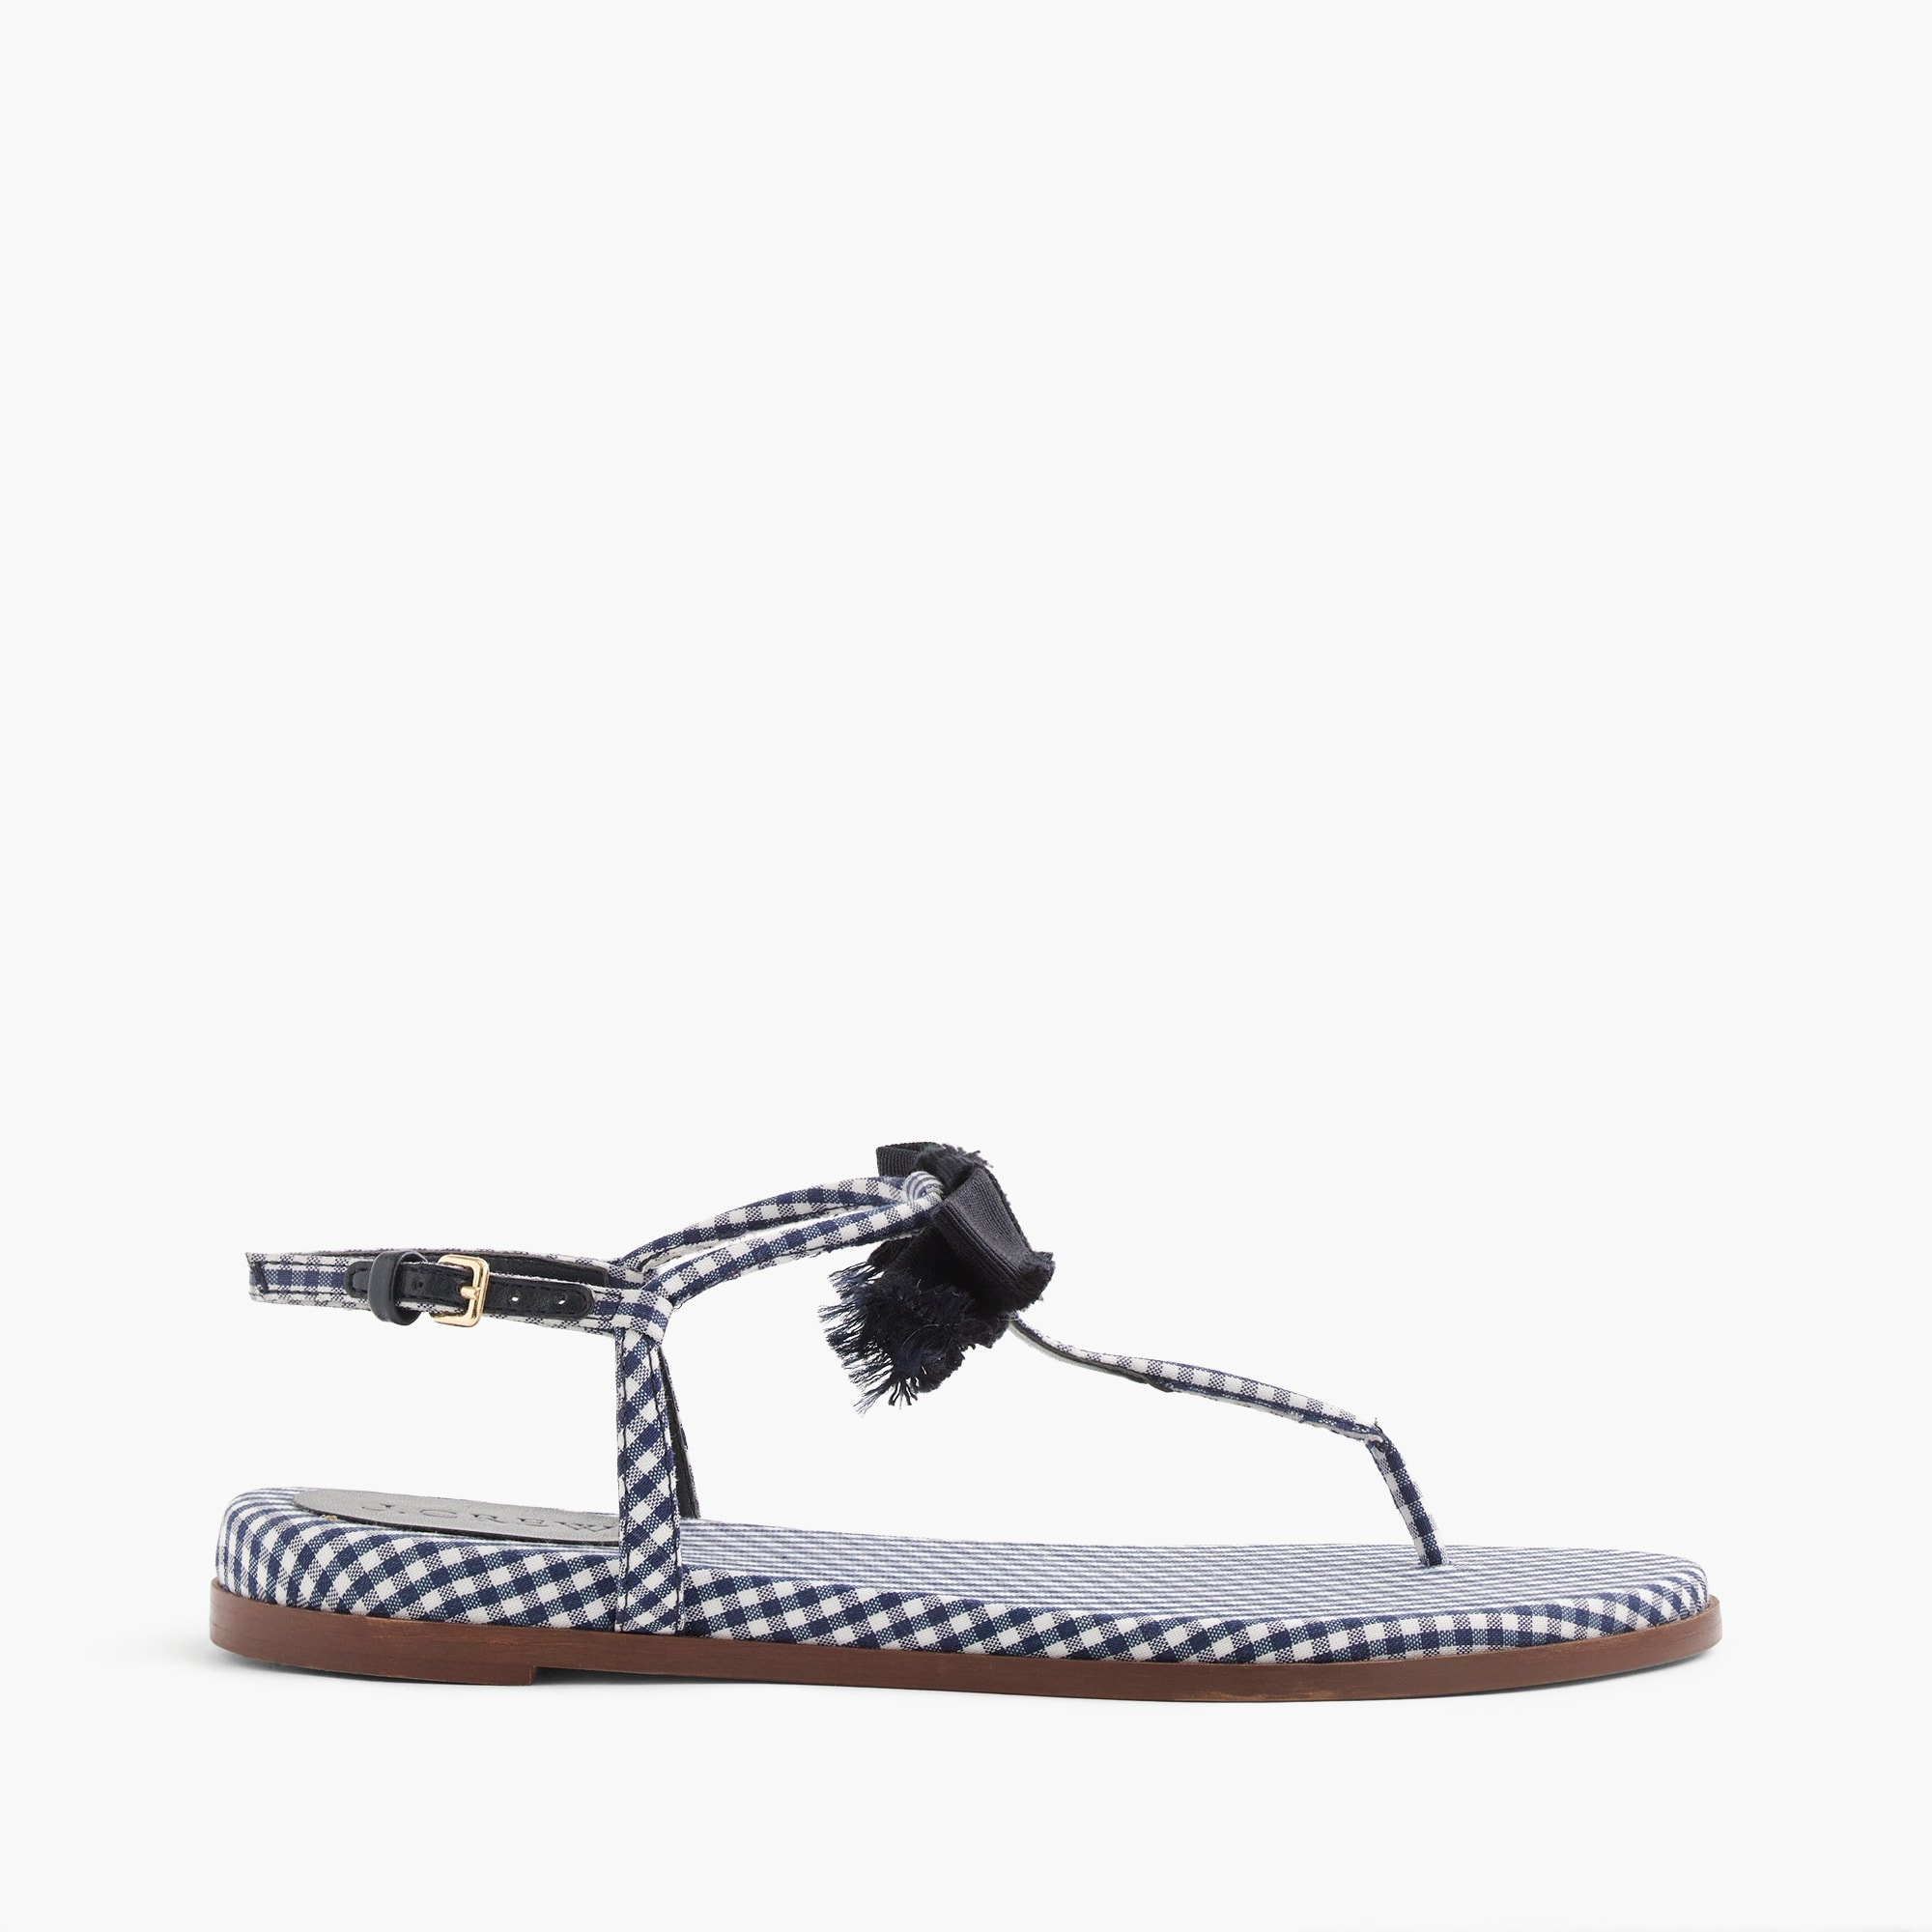 gingham t-strap bow sandals : women sandals